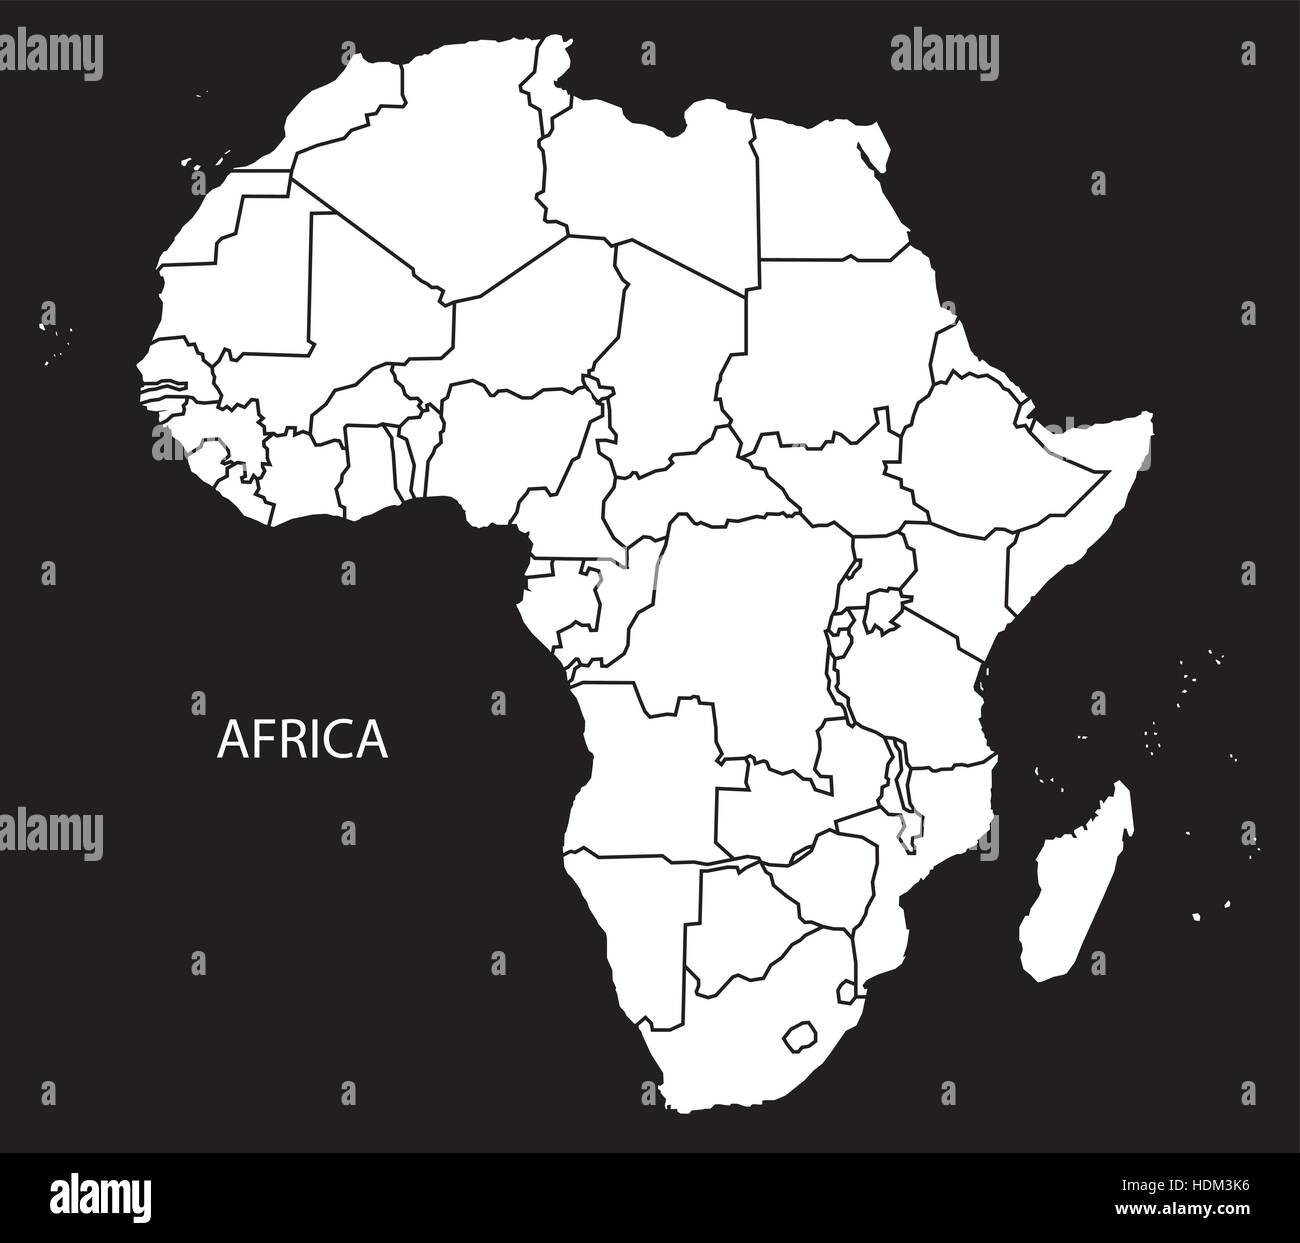 Africa Map With Countries Black And White Illustration